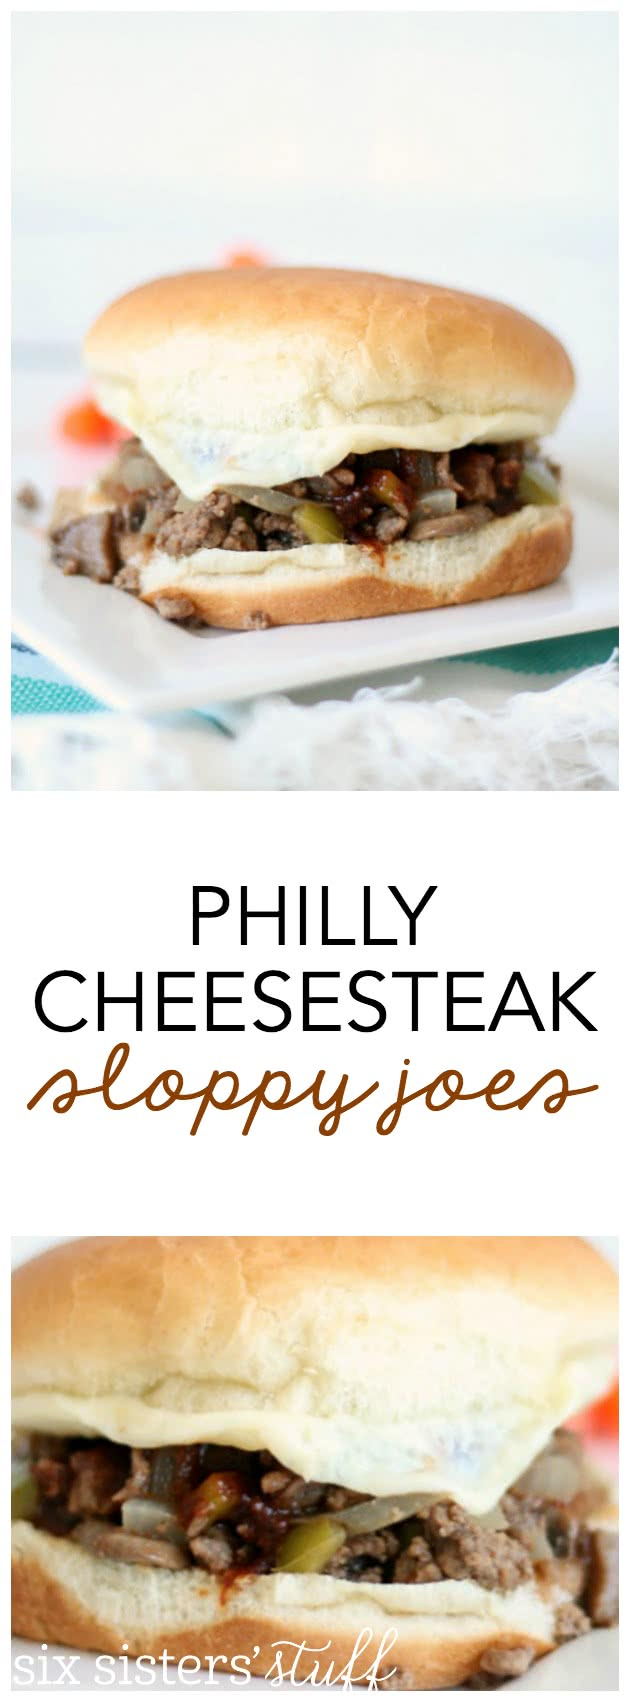 Philly Cheesesteak Sloppy Joes Recipe from SixSistersStuff.com